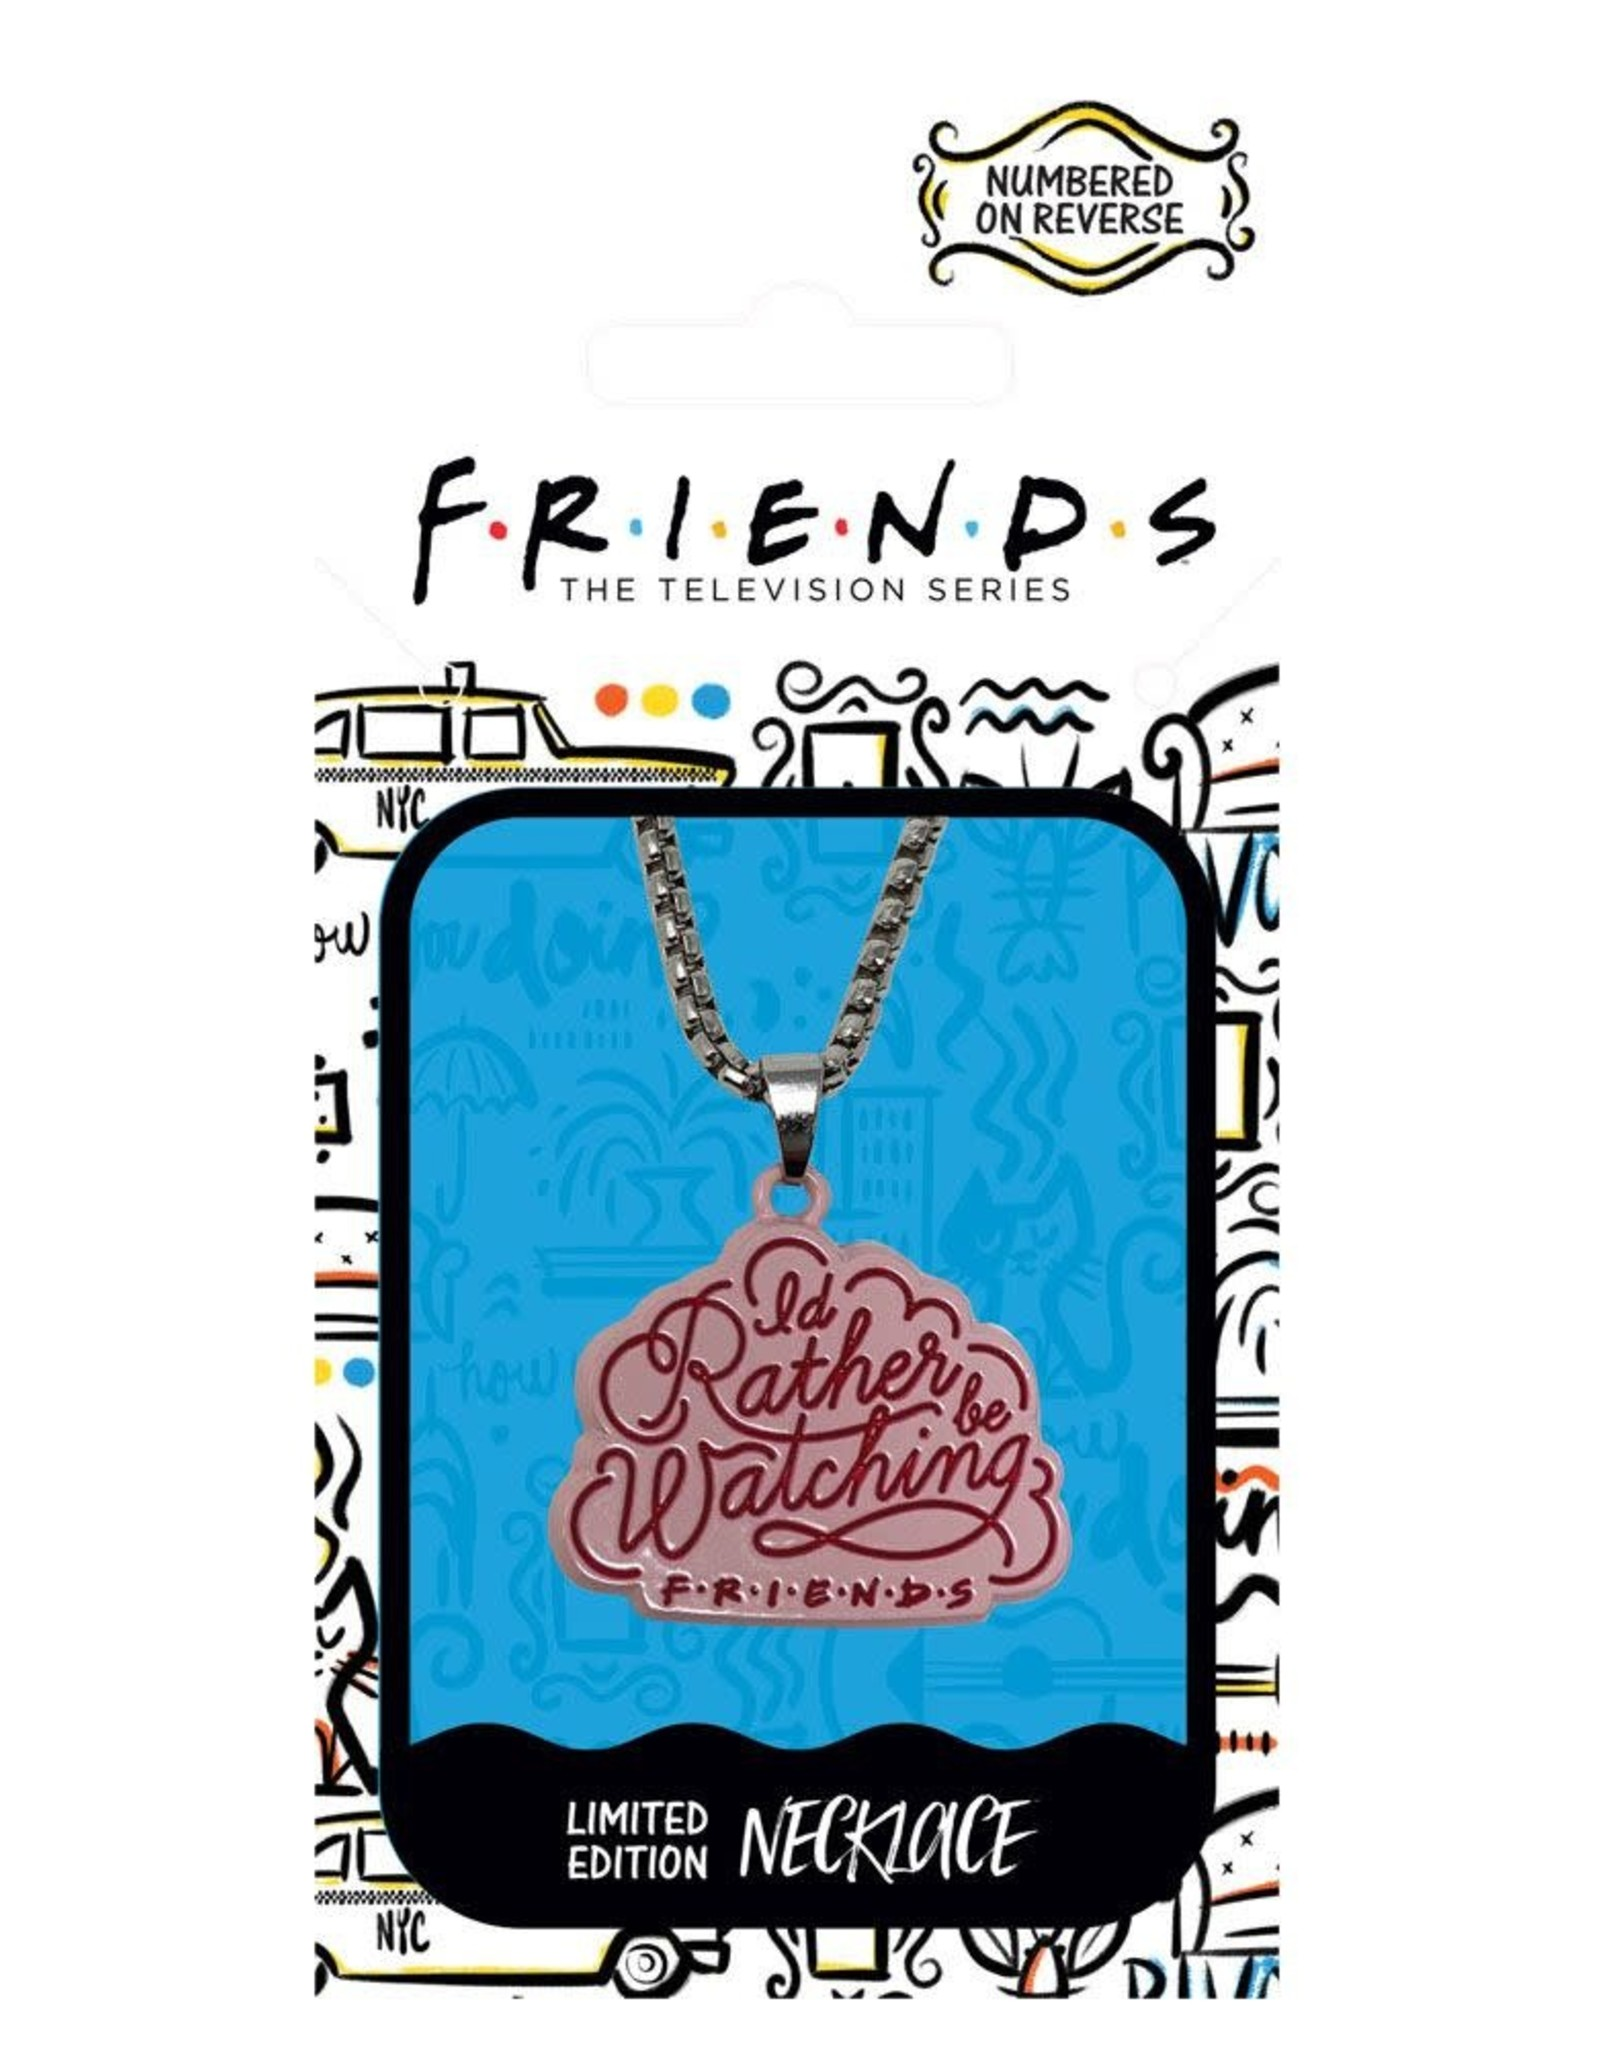 FRIENDS Limited Edition Necklace - I'd Rather Be Watching